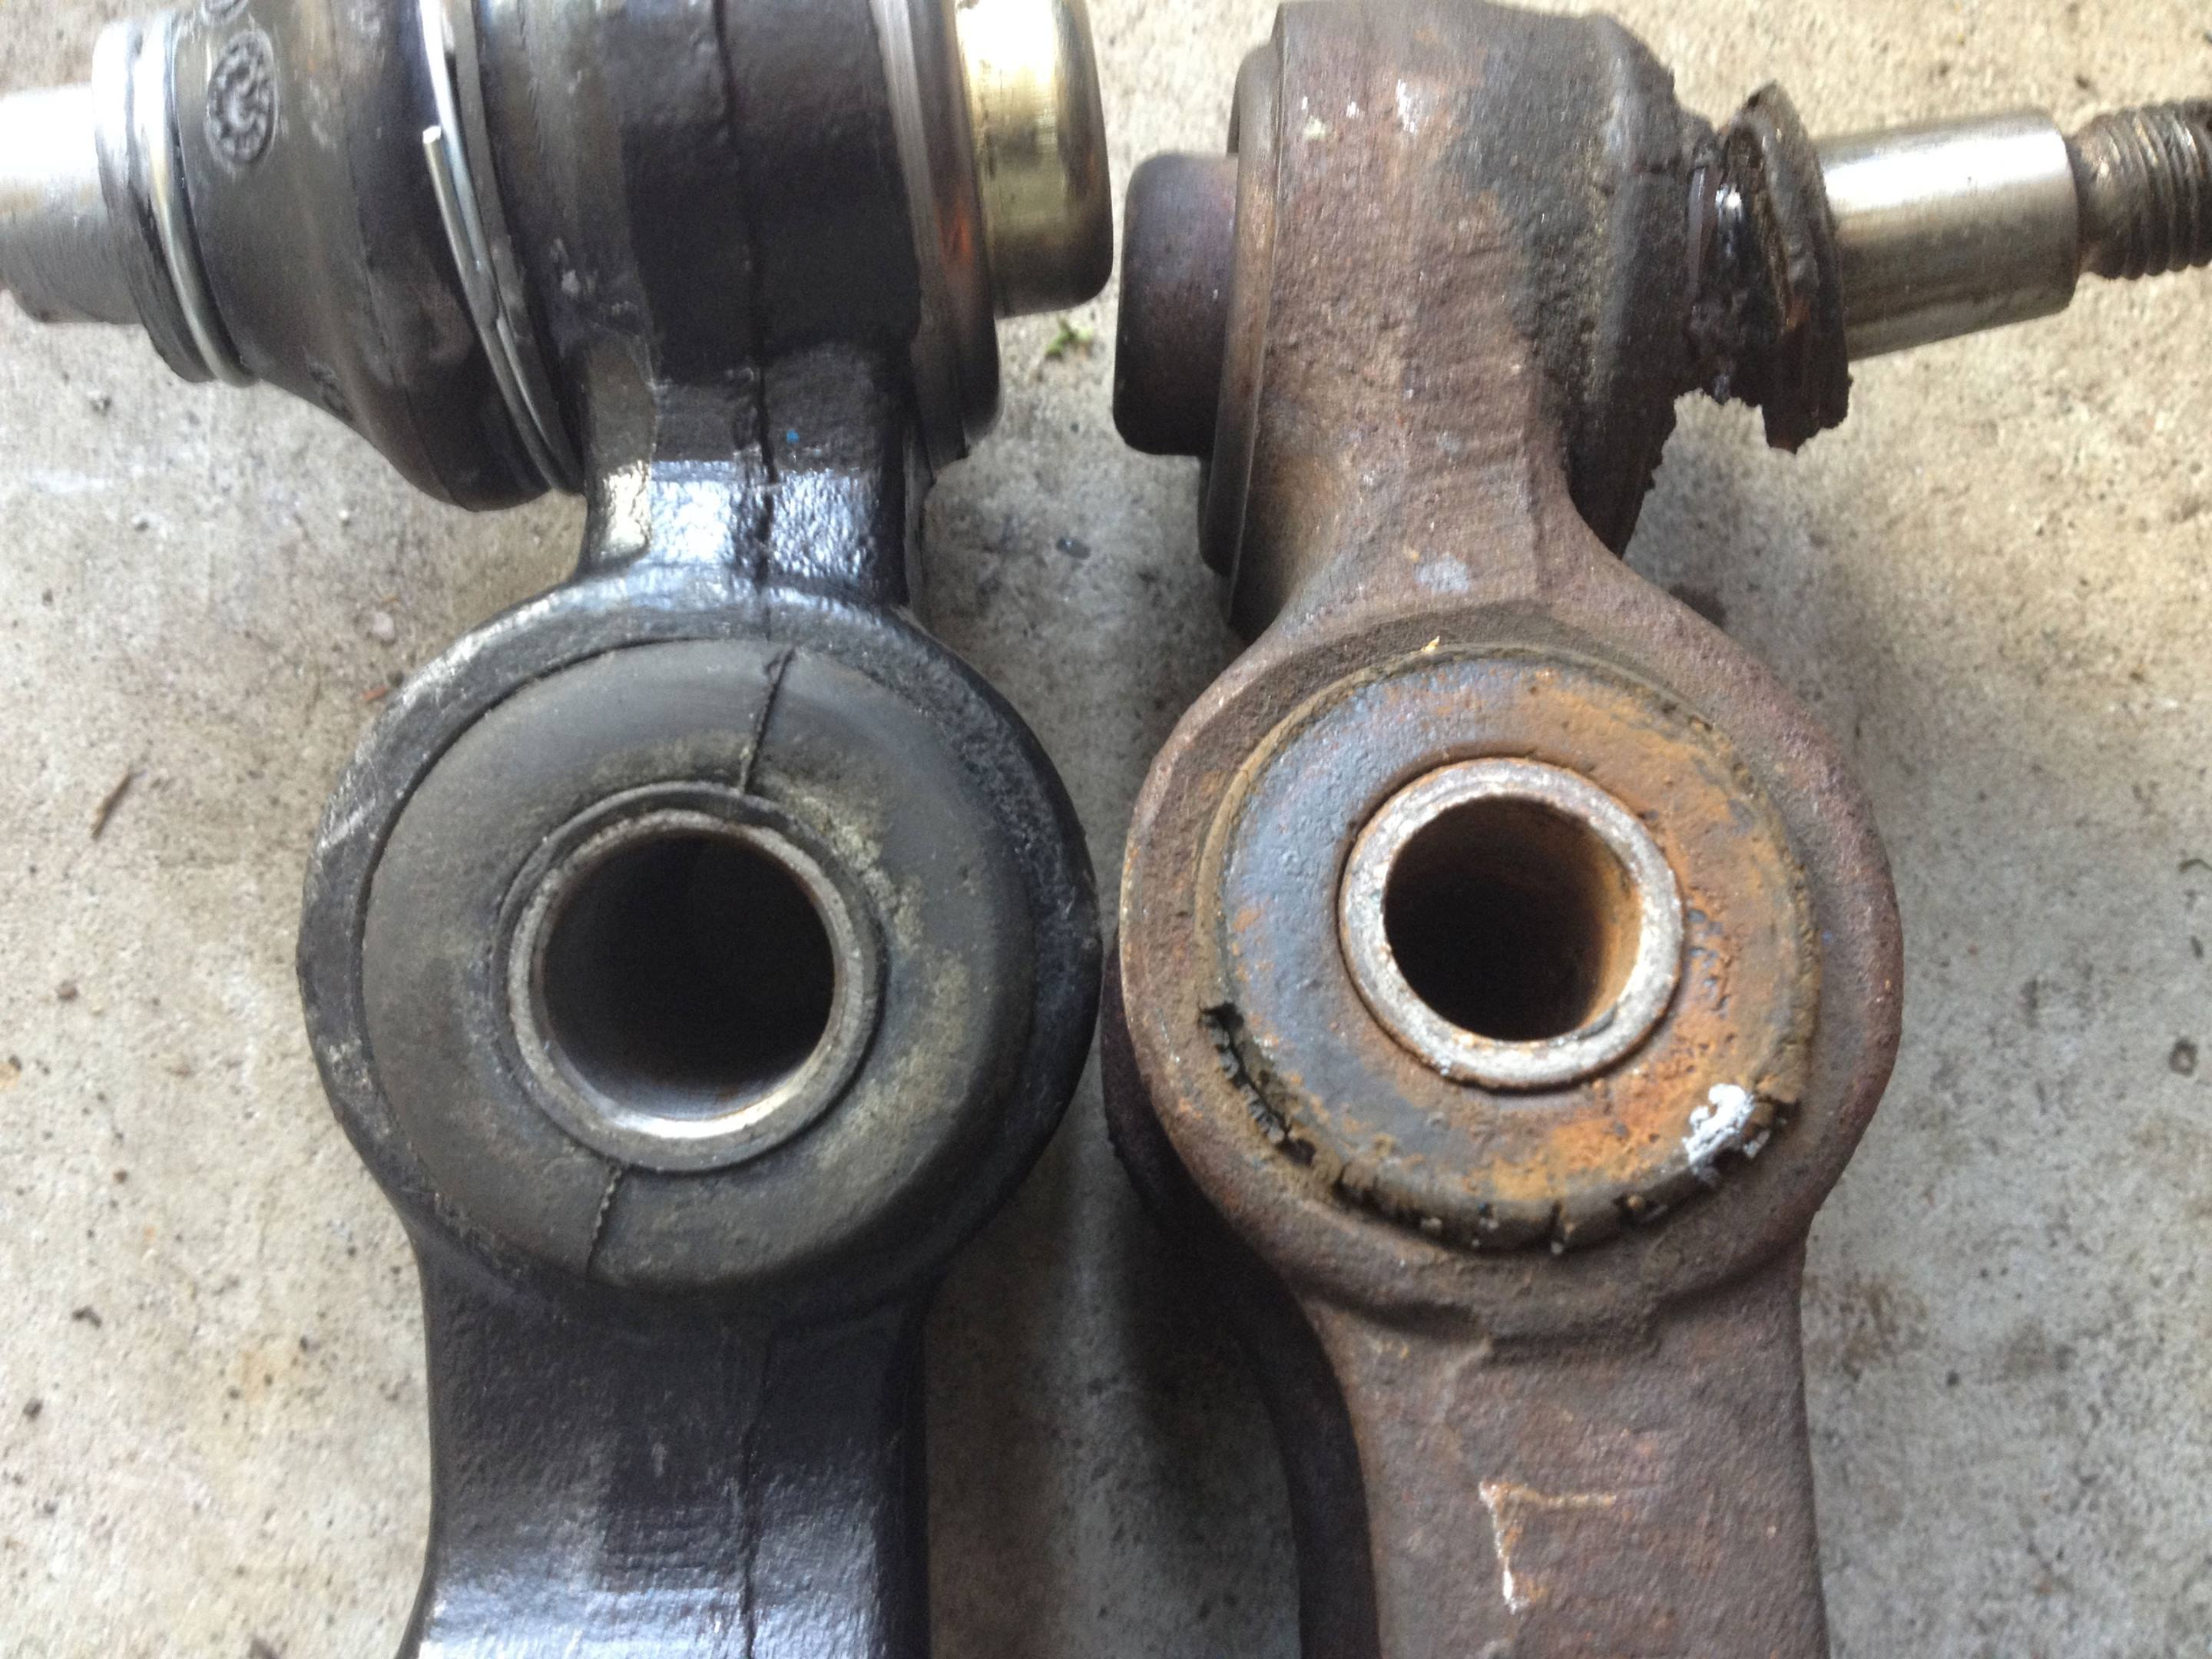 Examples of bushings in lower control arms.